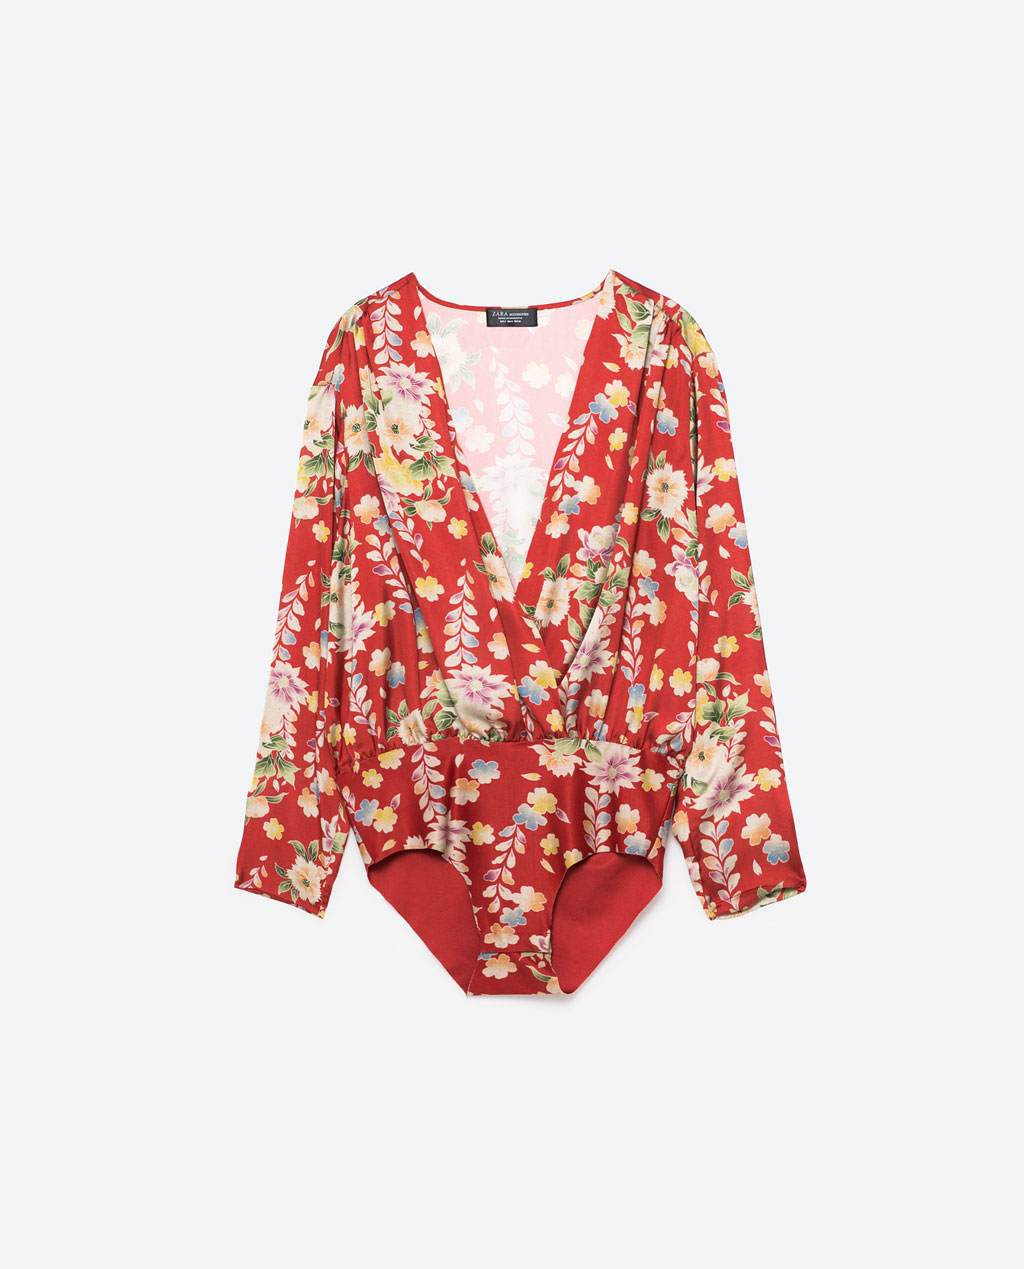 http://www.zara.com/us/en/sale/woman/tops/view-all/printed-bodysuit-with-crossover-neckline-c732008p3948530.html